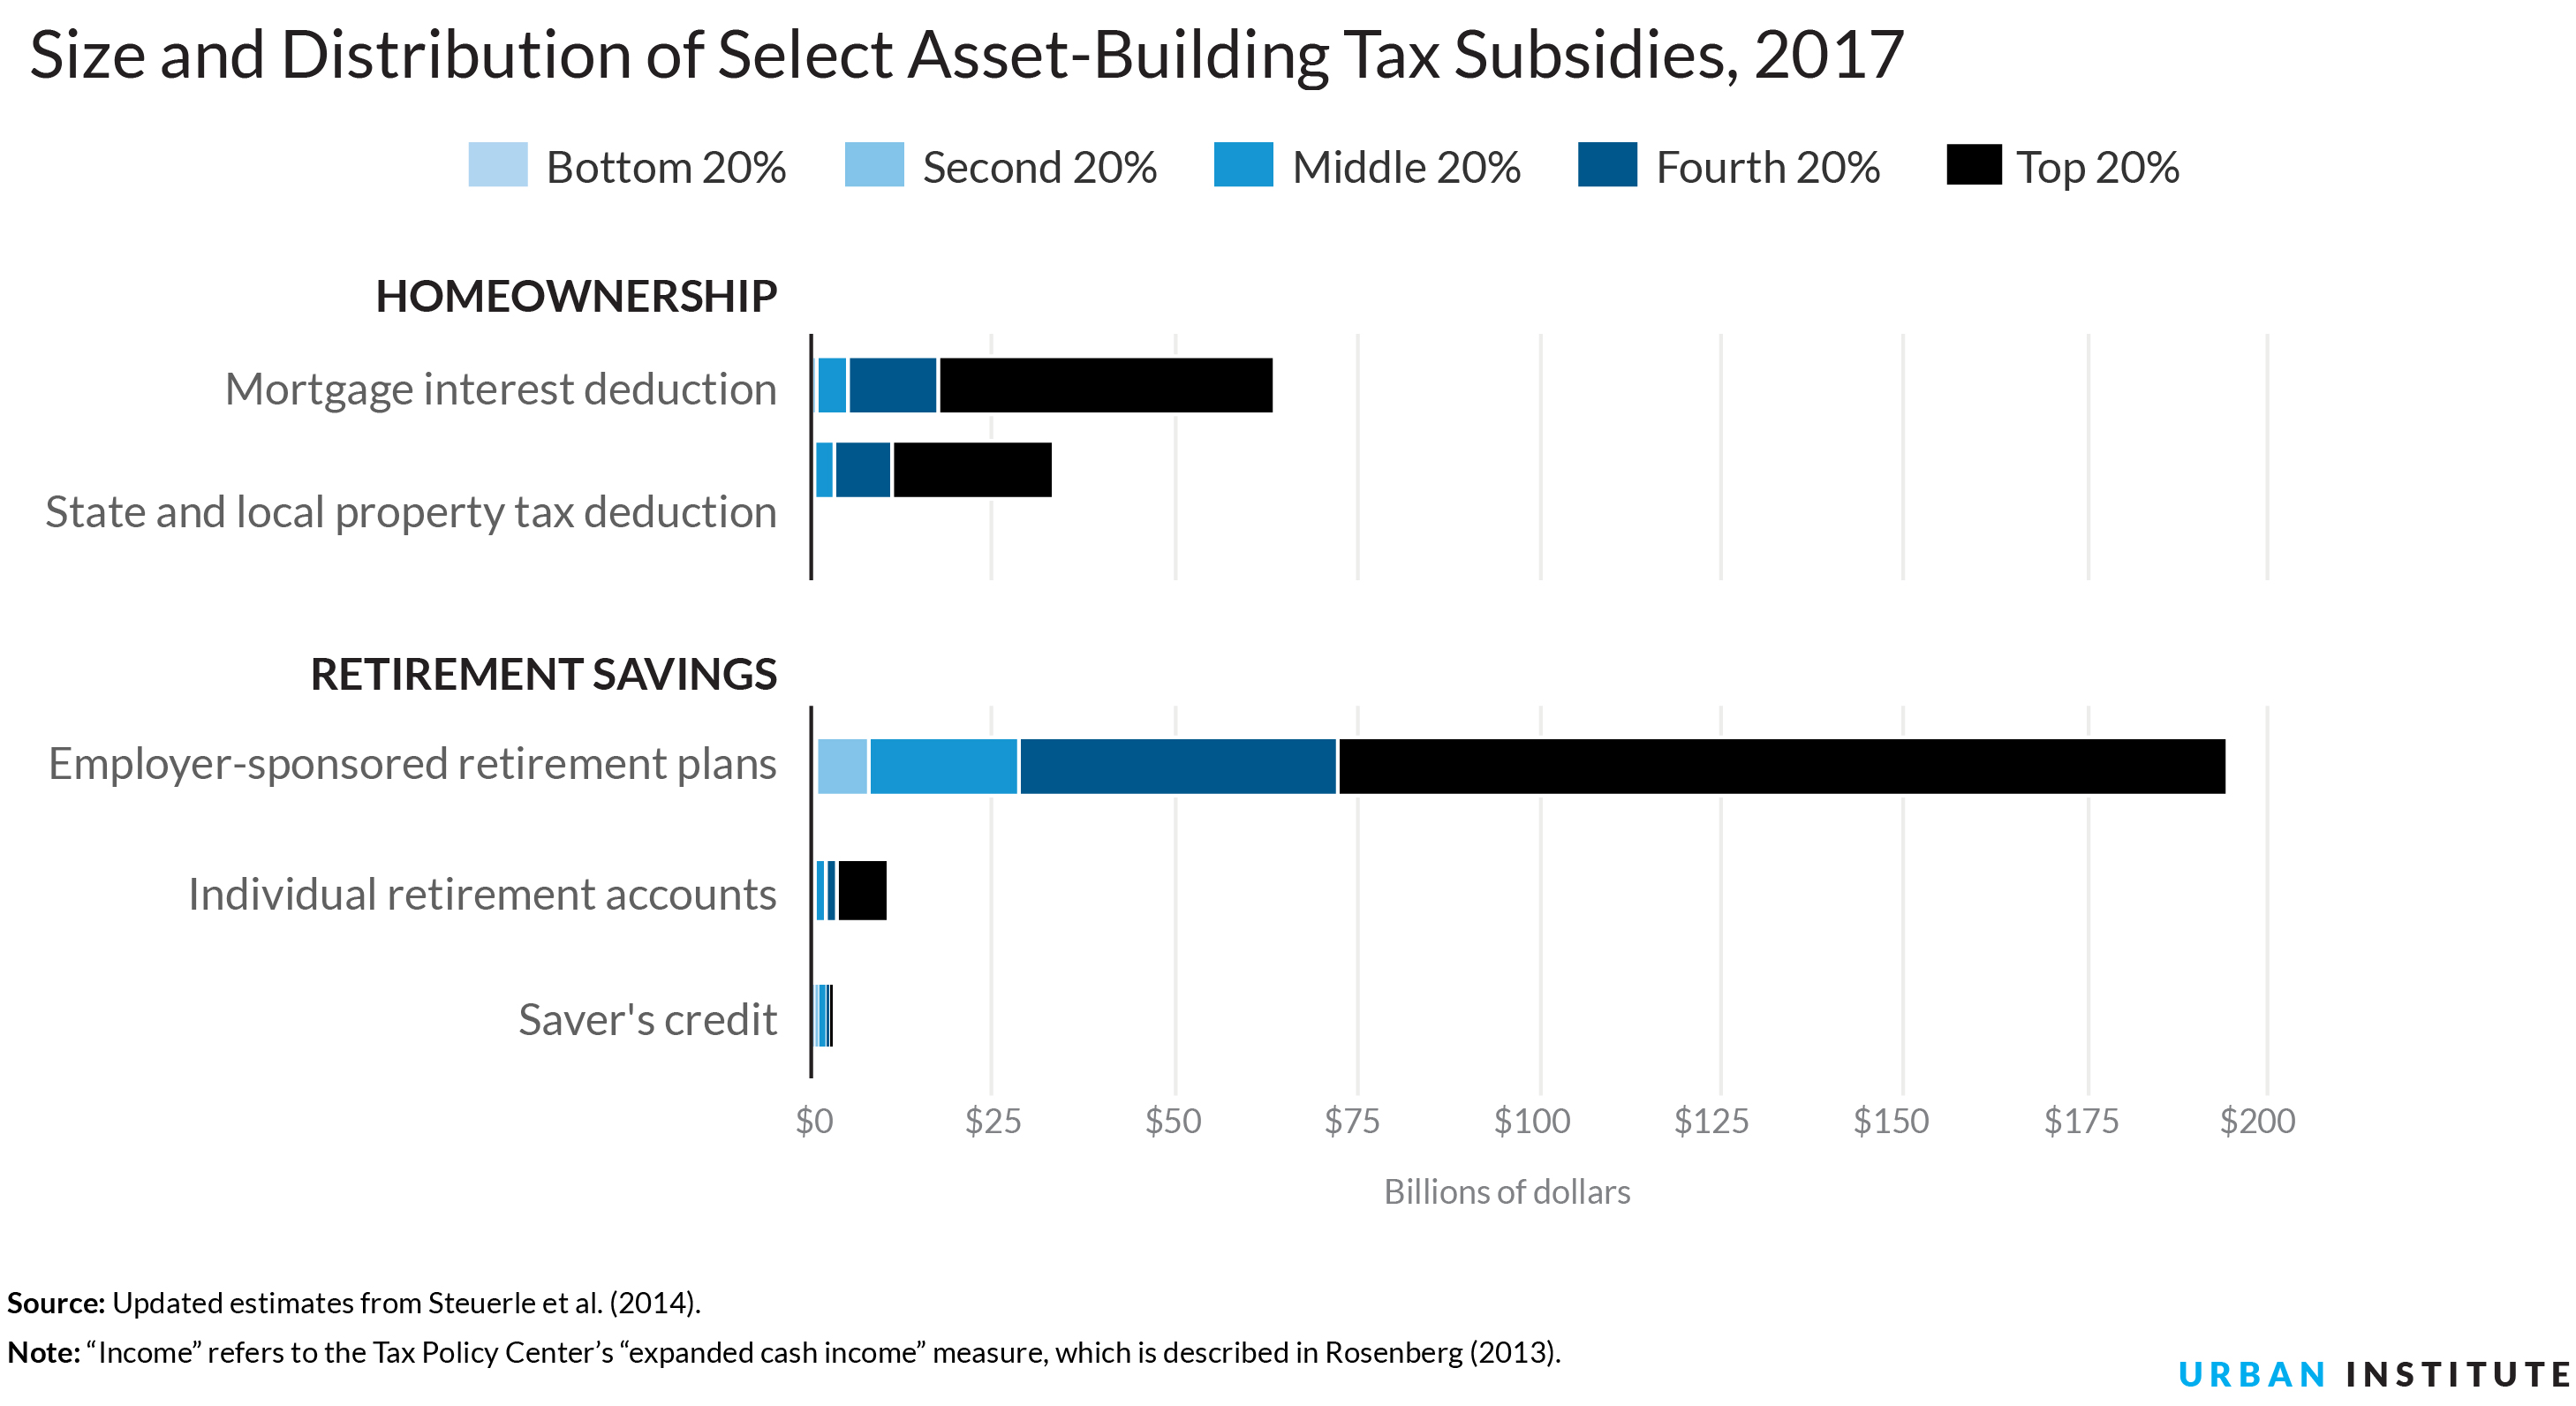 Federal policies fail to promote asset building by lower-income families